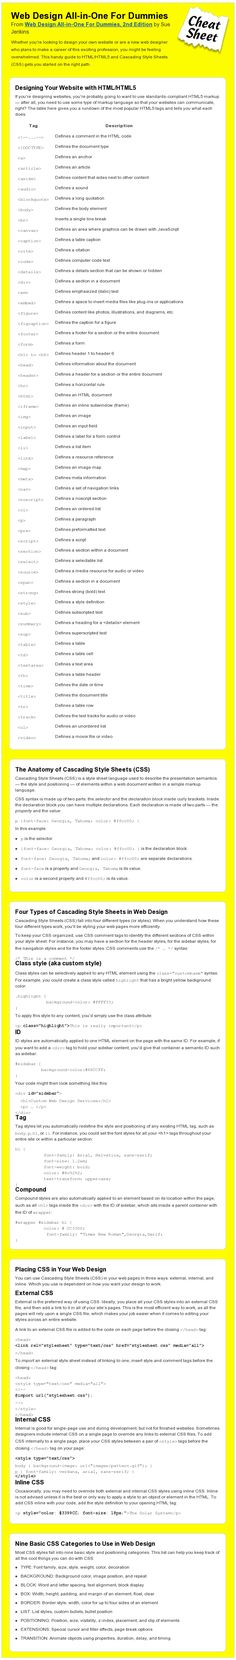 Web Design Cheat Sheet: Handy guide to HTML/HTML5 and Cascading Style Sheets (CSS) #designartinternet #socialmedia #diseñoweb